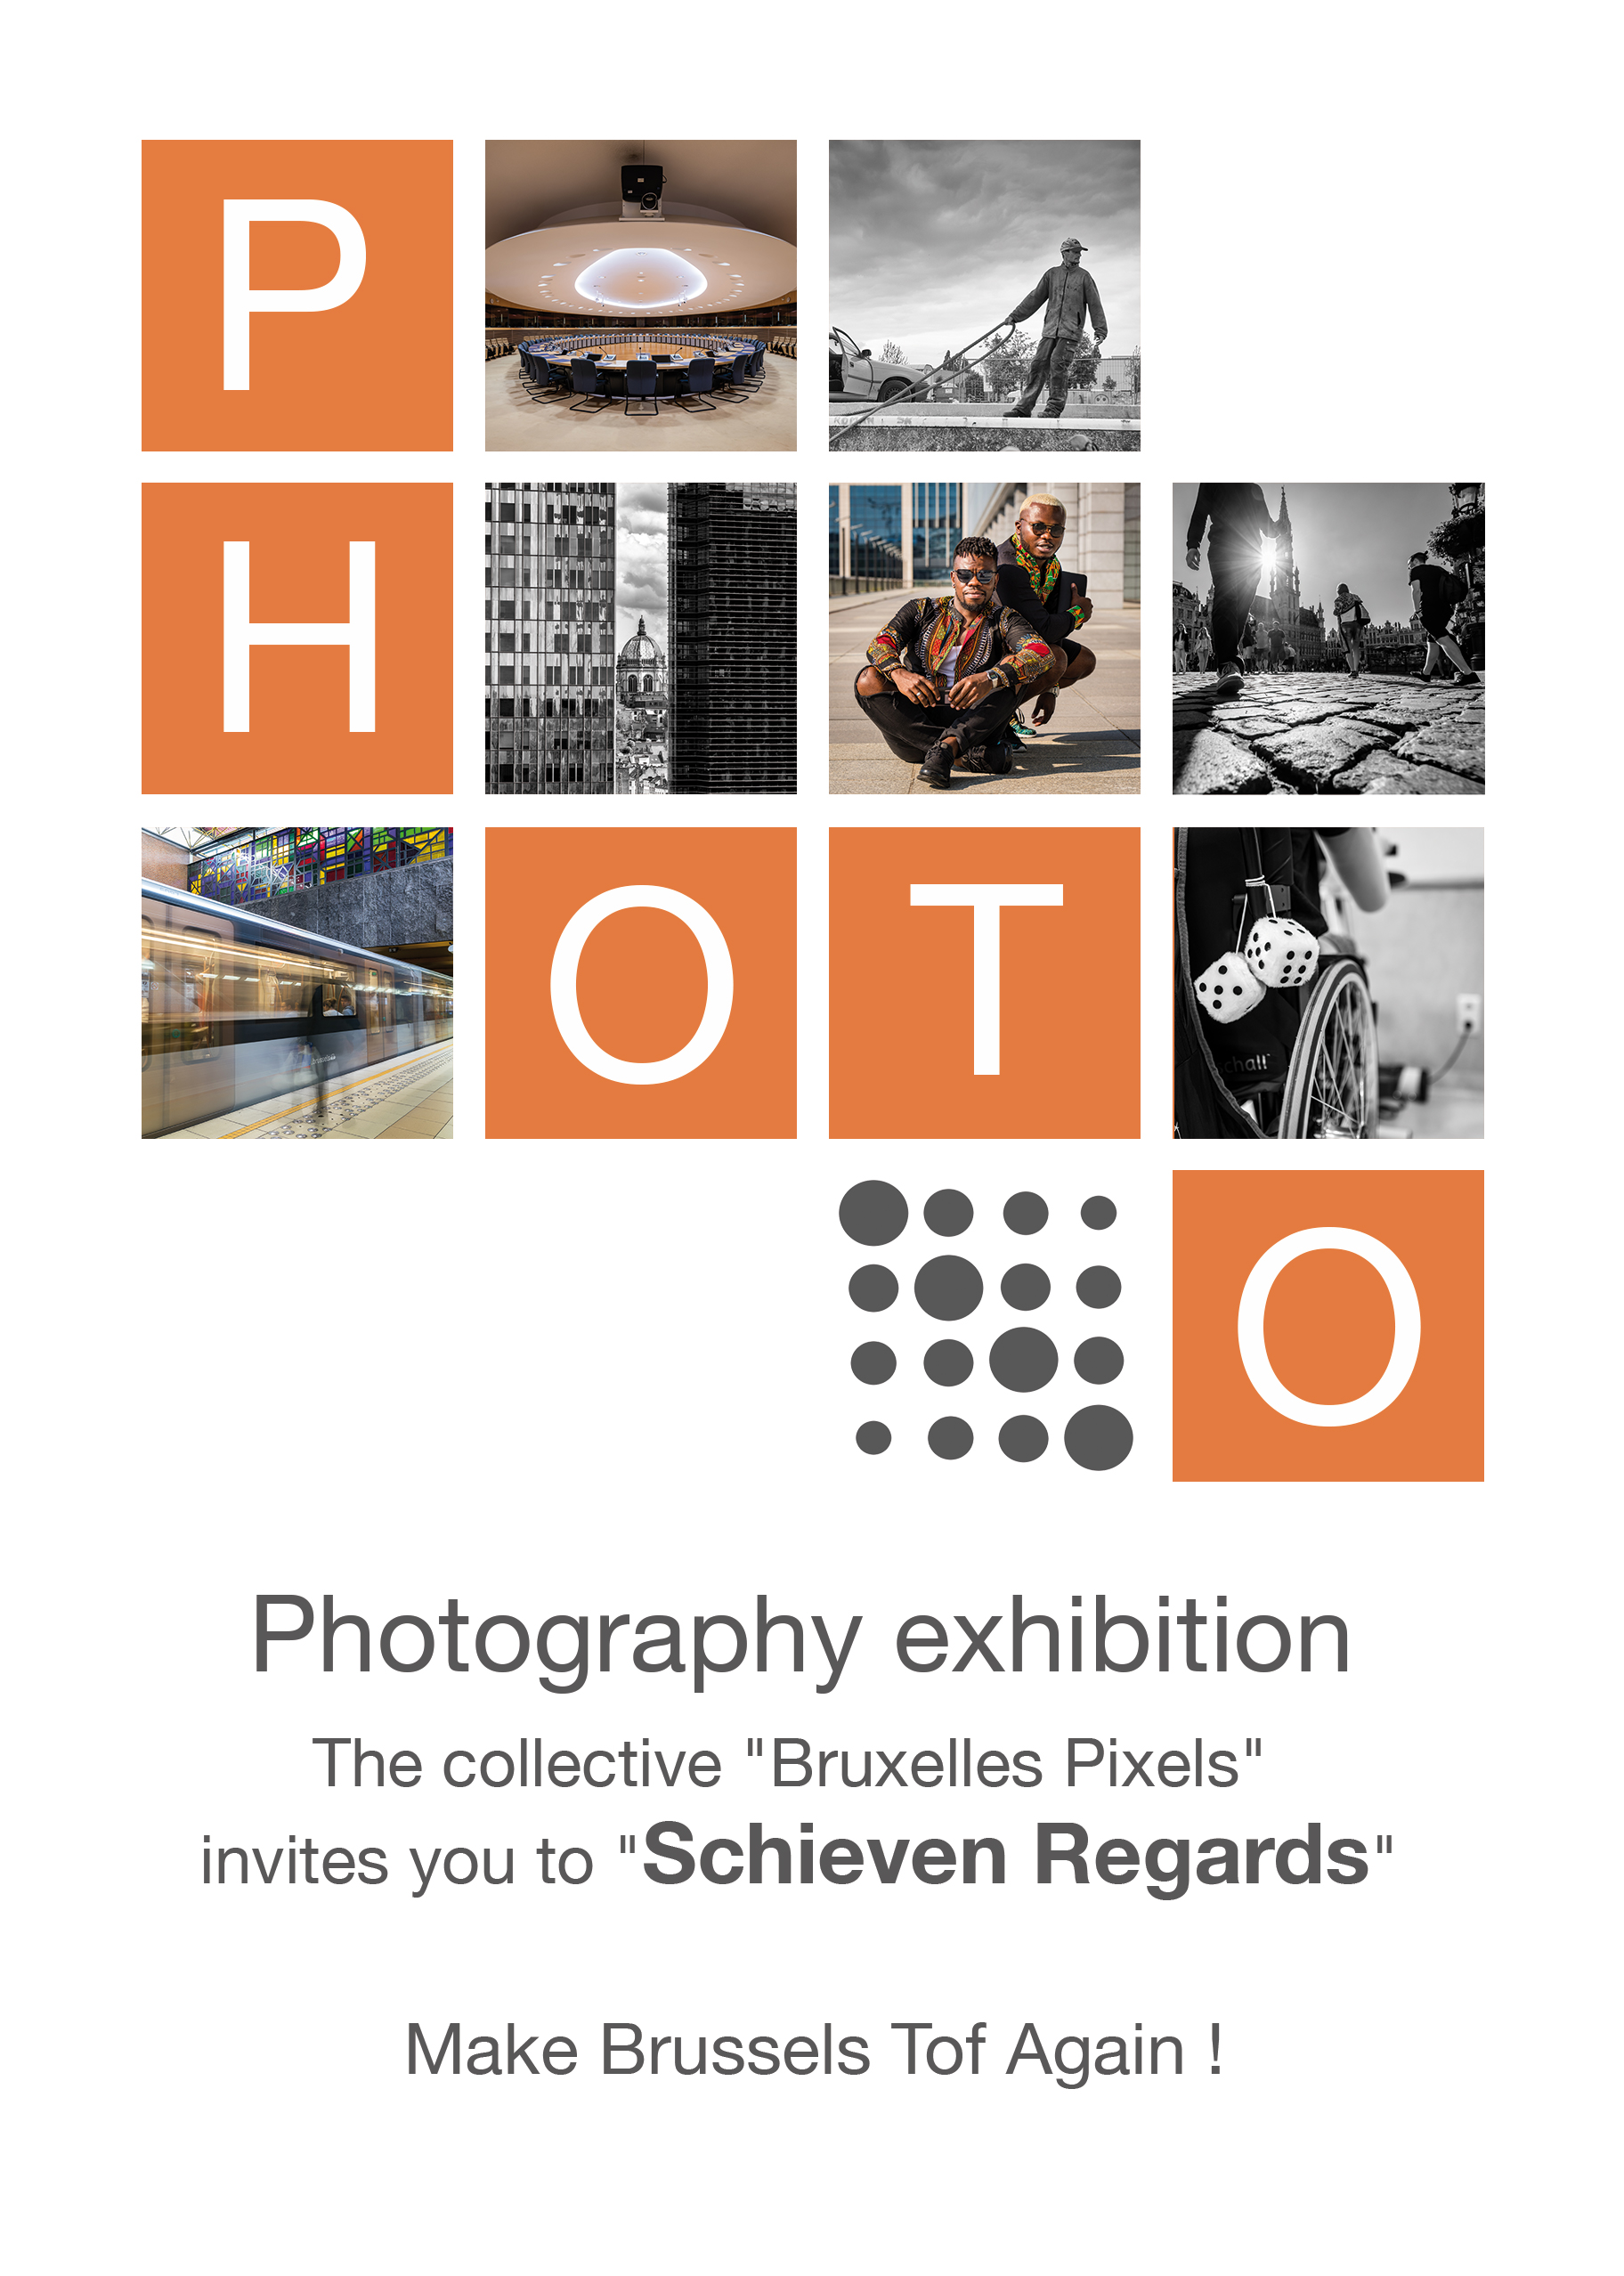 «Schieven Regards» a photography exhibition by Brussels Pixels, Oct 2018